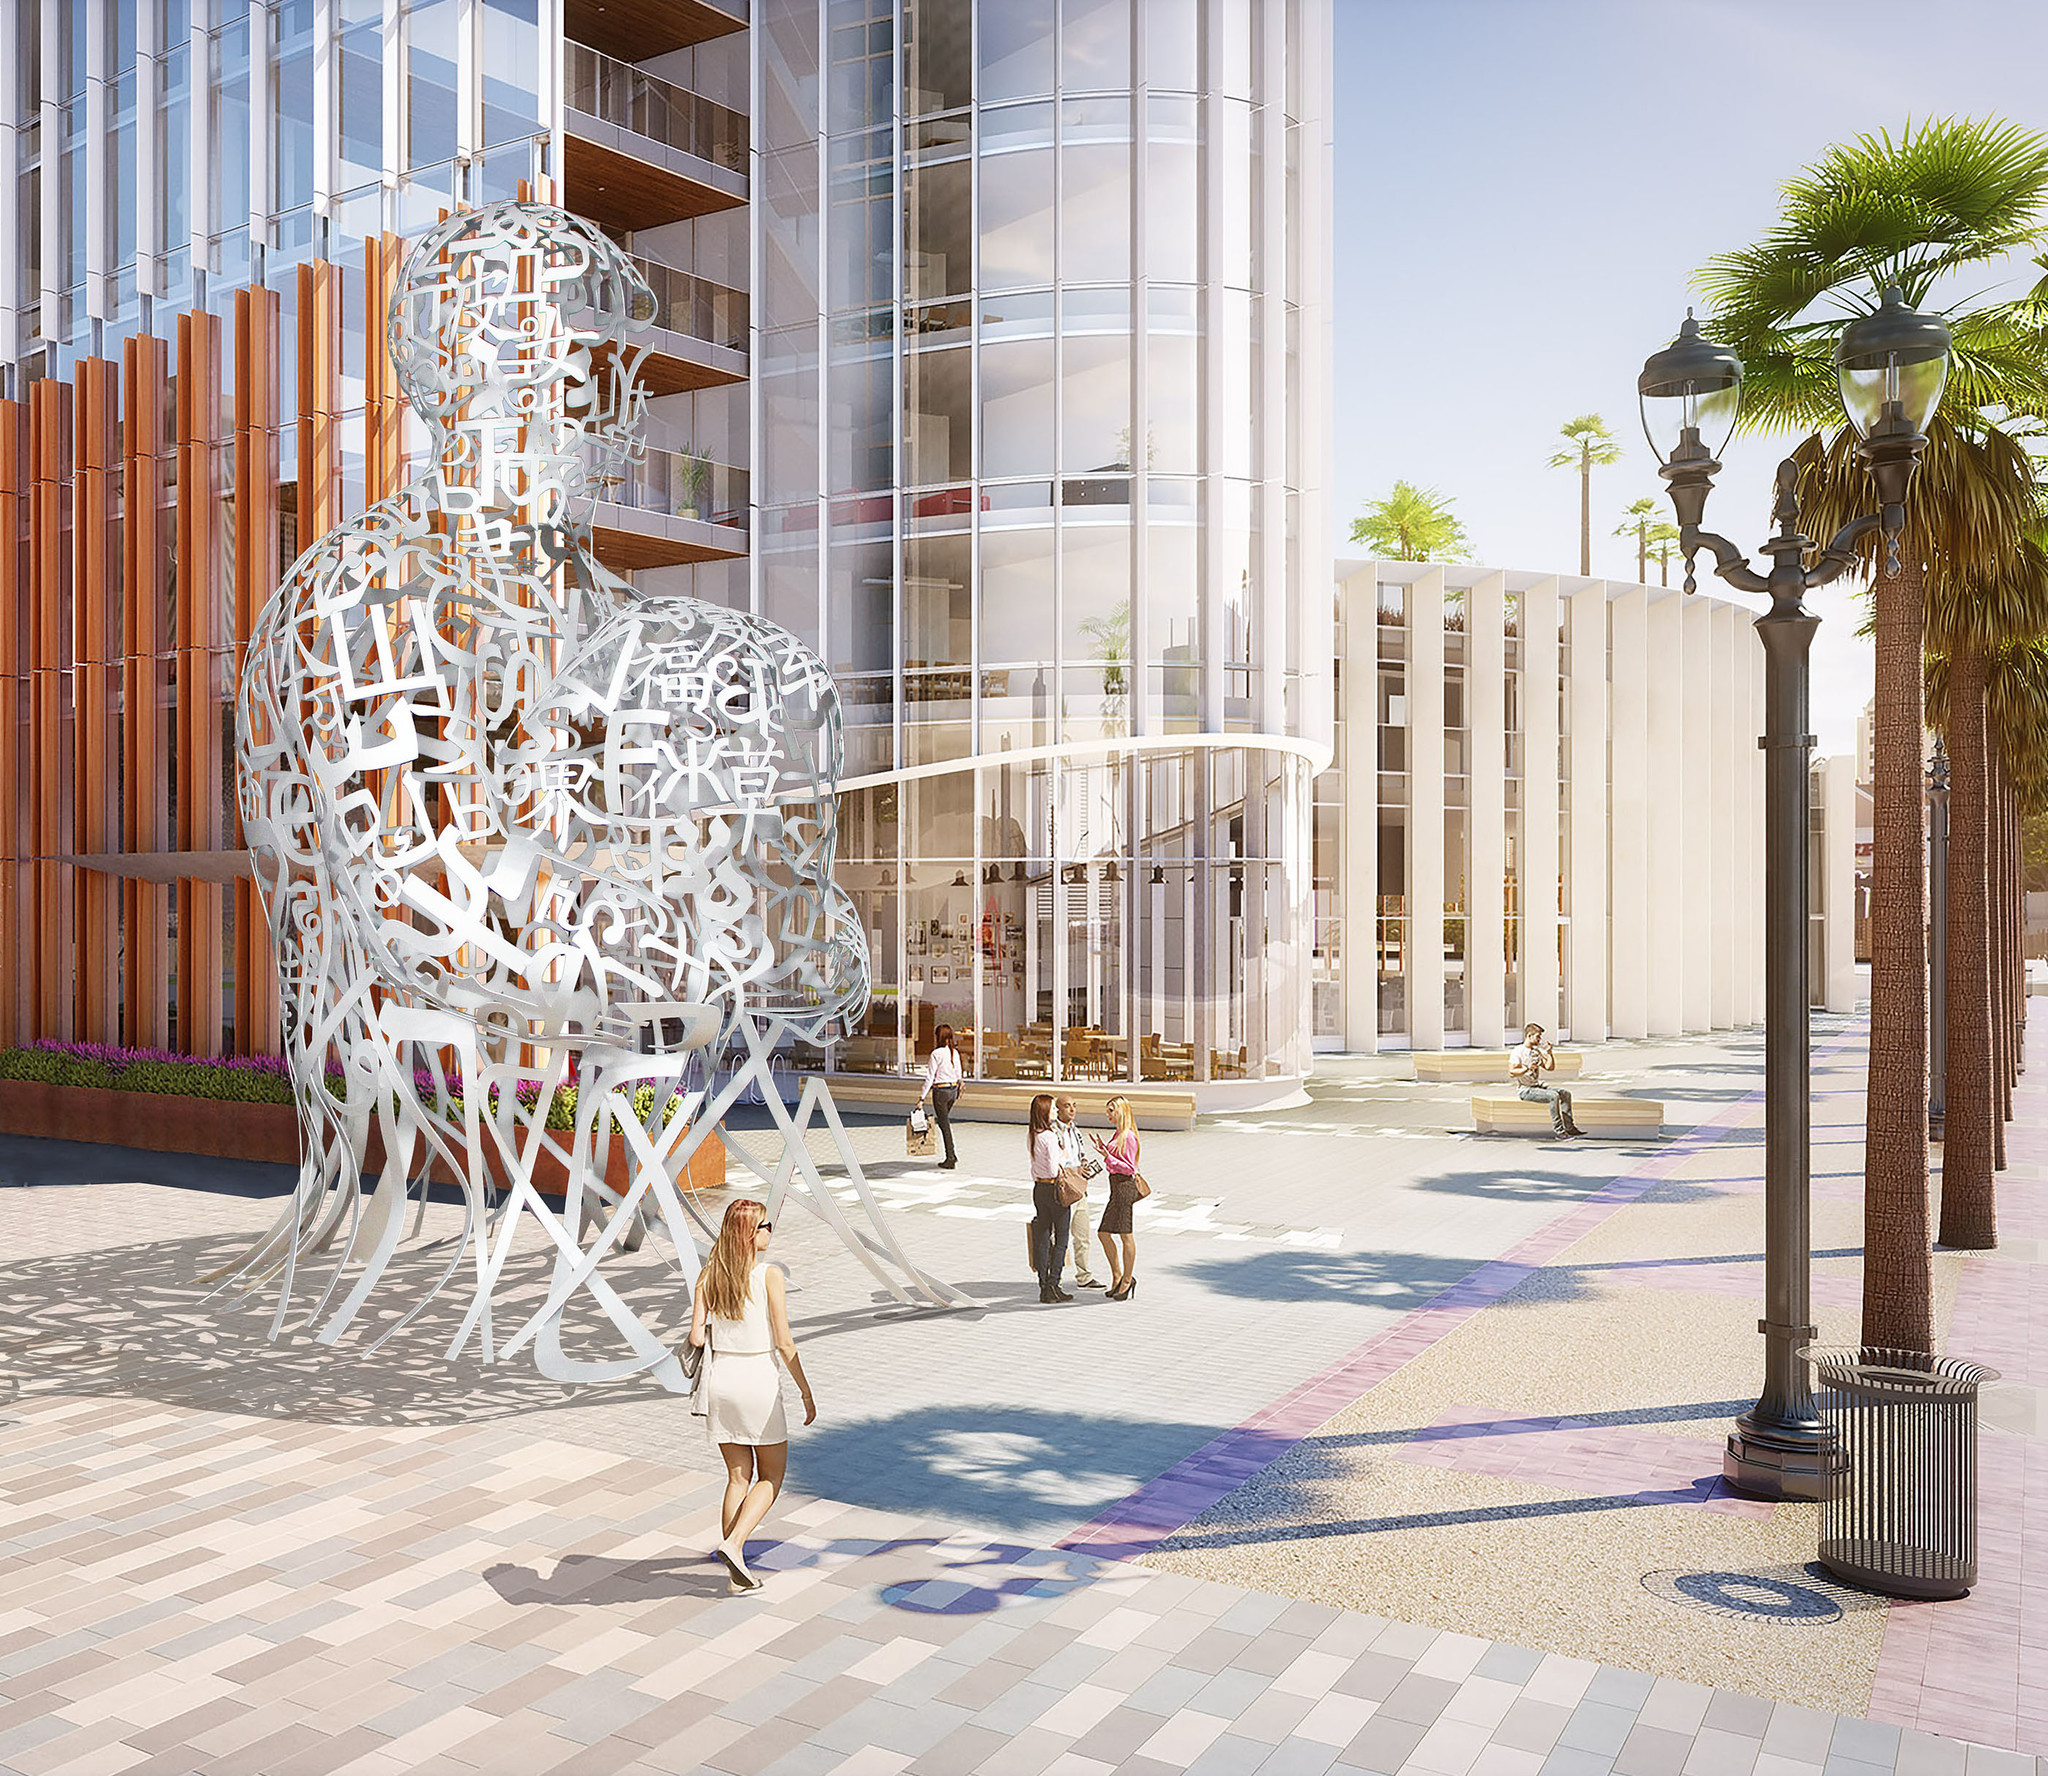 sculpture rendering on plaza